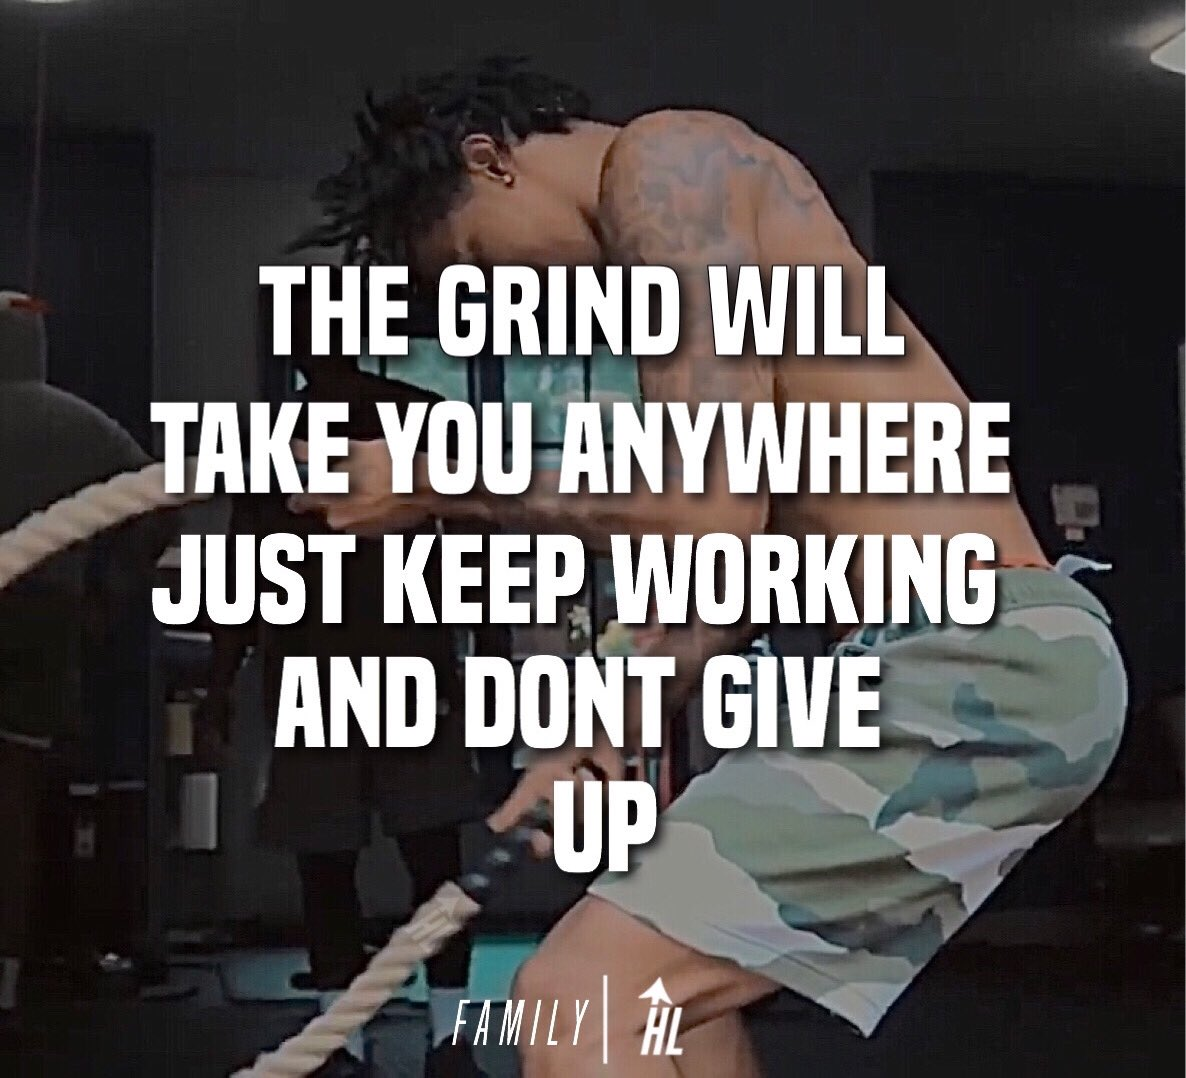 F A M I L Y 🦅 - #grind #Grinding #greatness #greatnessawaits #motivation #MotivationalQuotes #basketballquotes #nba #hardwork #motivate #determination #inspire #dontquit #goharder #hustle #bestrong #dontgiveup #family #hl #quotesoftheday #quotedits #grindharder #work - @JaMorant https://t.co/PHyzQElb1s